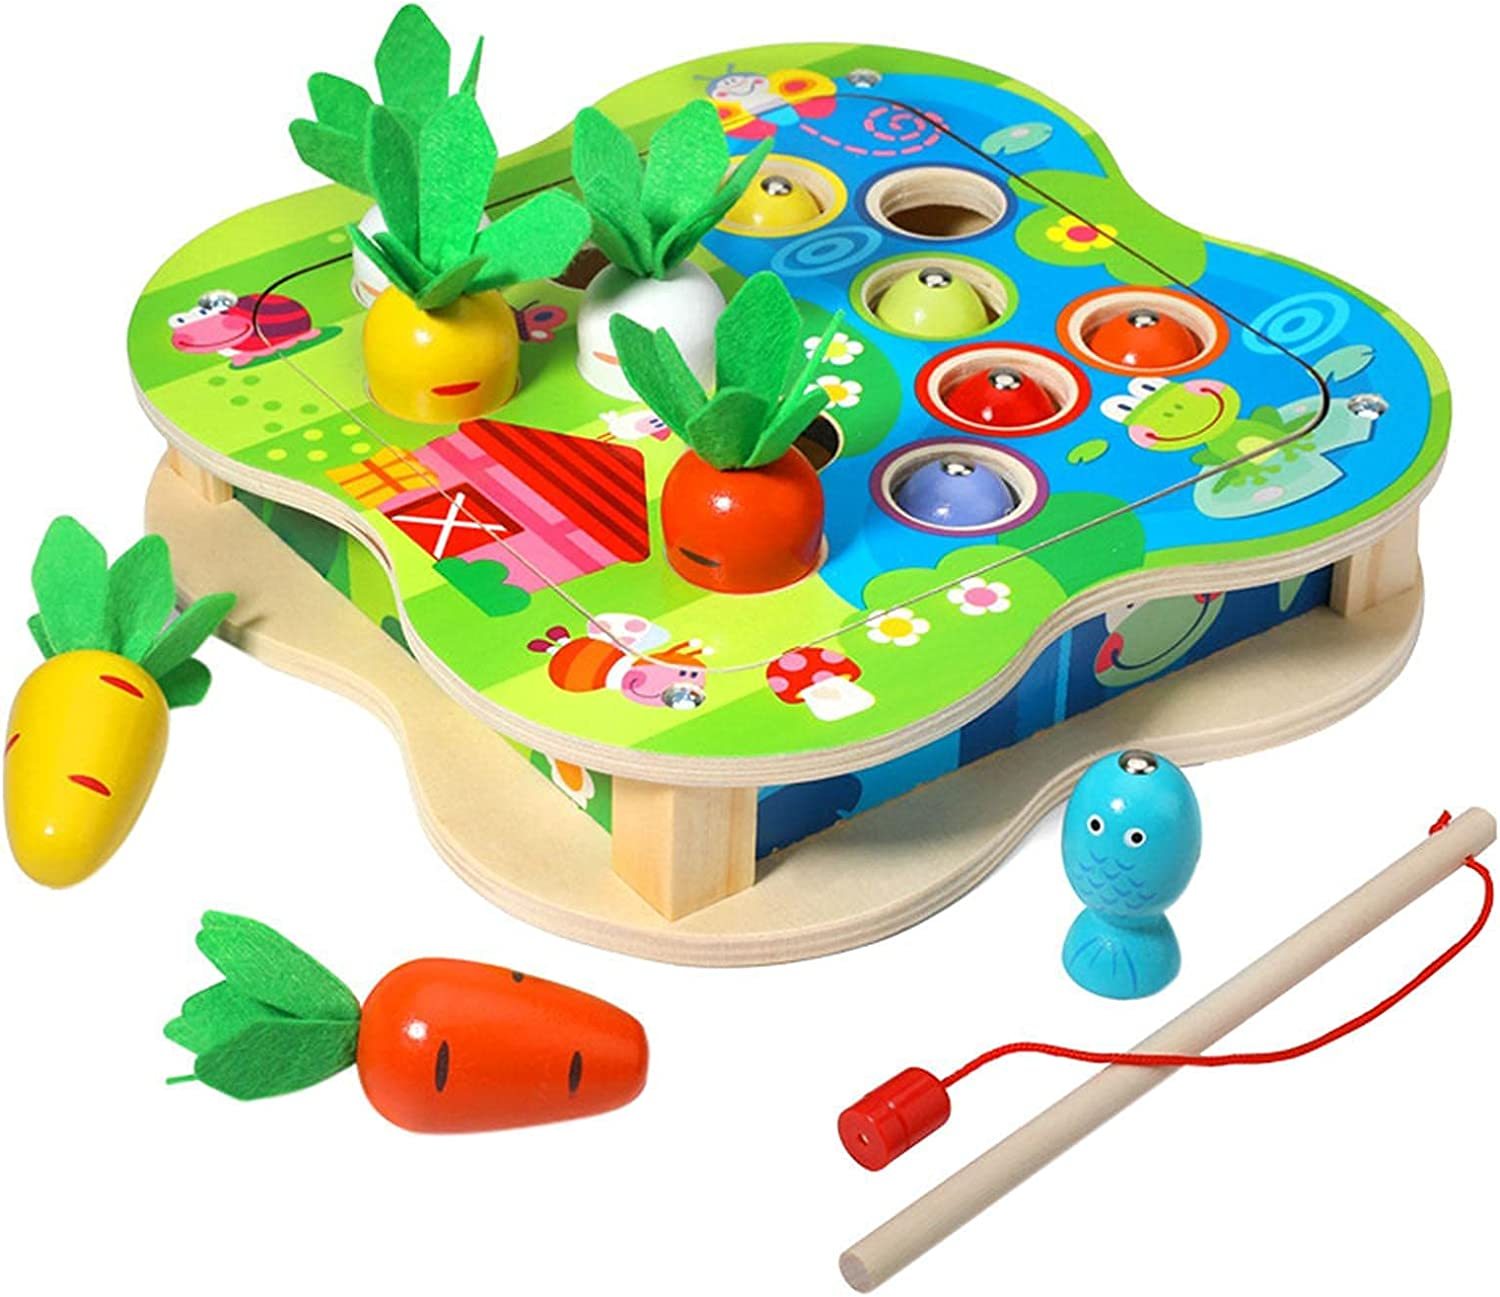 TYUIJK Carrot Fishing Toy Wooden Columbus Mall Some reservation 2-in-1 Ma Childrens Educational